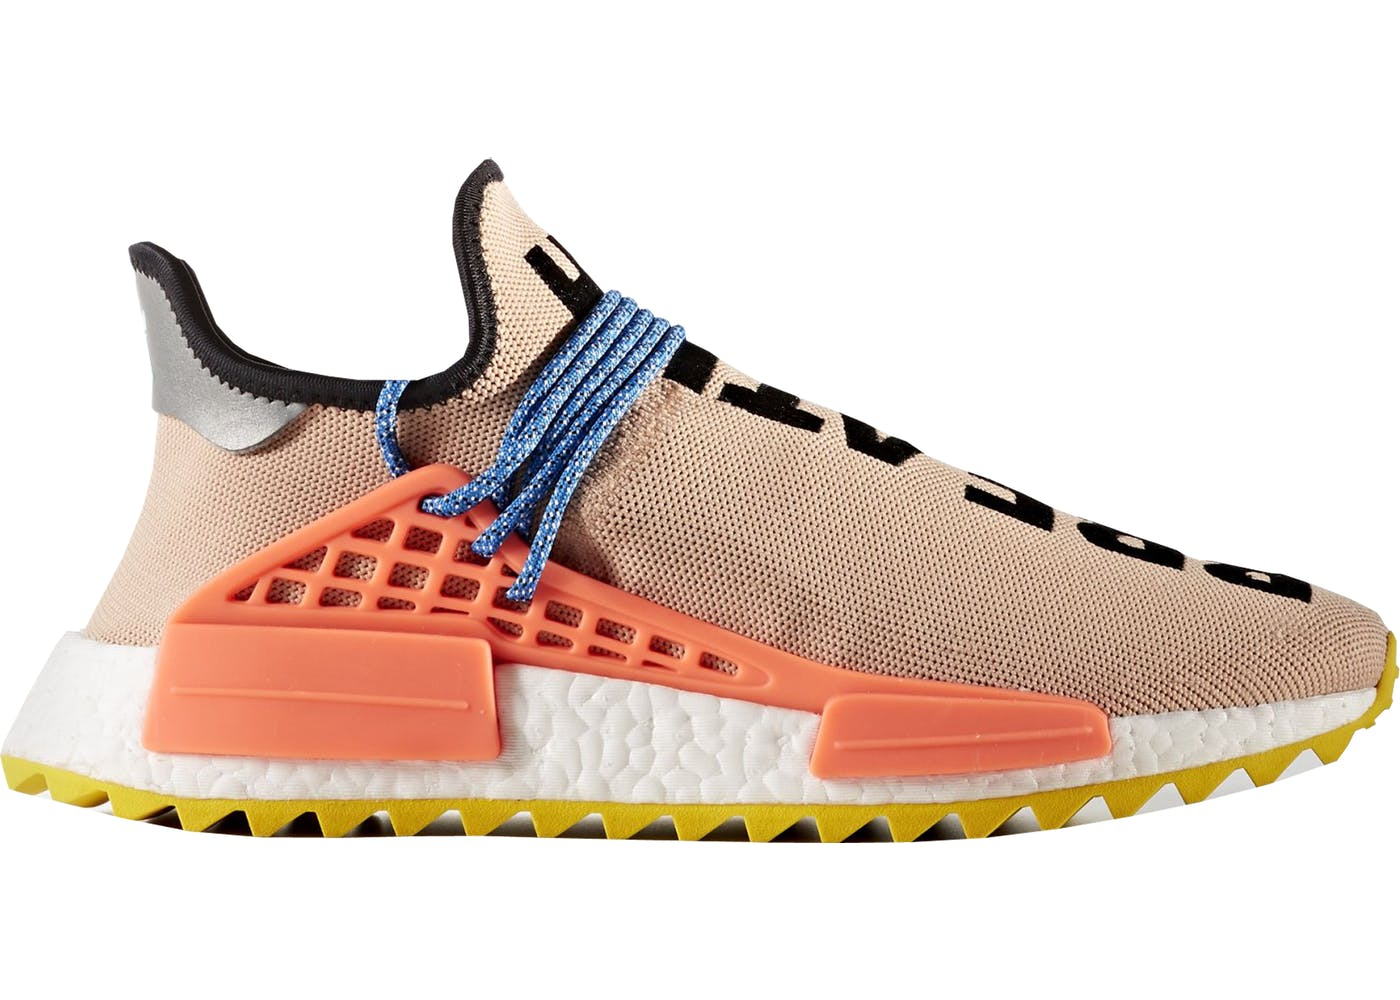 Pharrell X adidas Originals NMD Hu Trail Collabs Set to Debut This